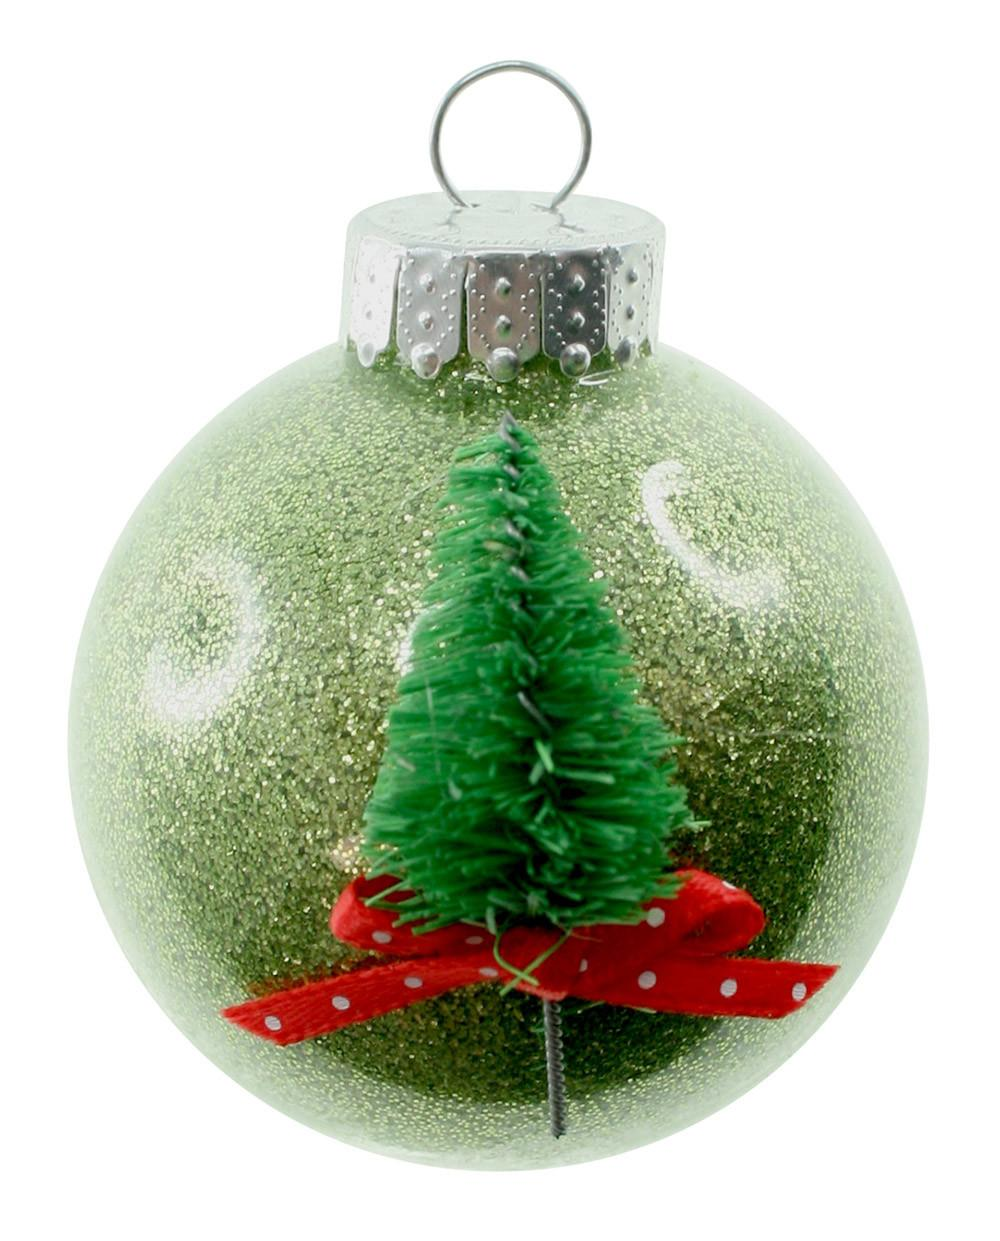 Decorate Clear Glass Ornaments